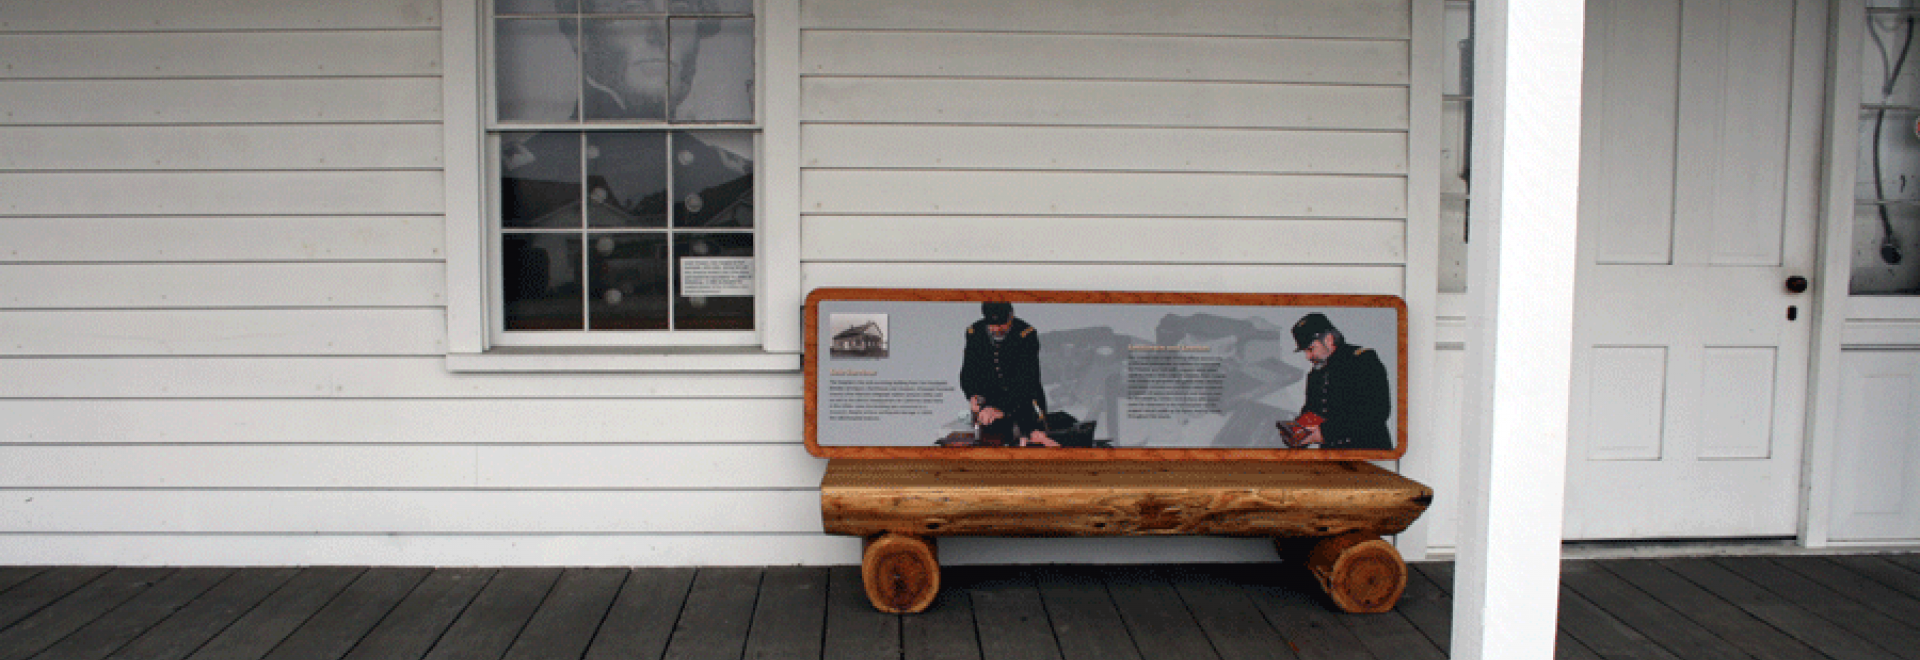 One of several interpretive signs about the life and purpose of Fort Humboldt